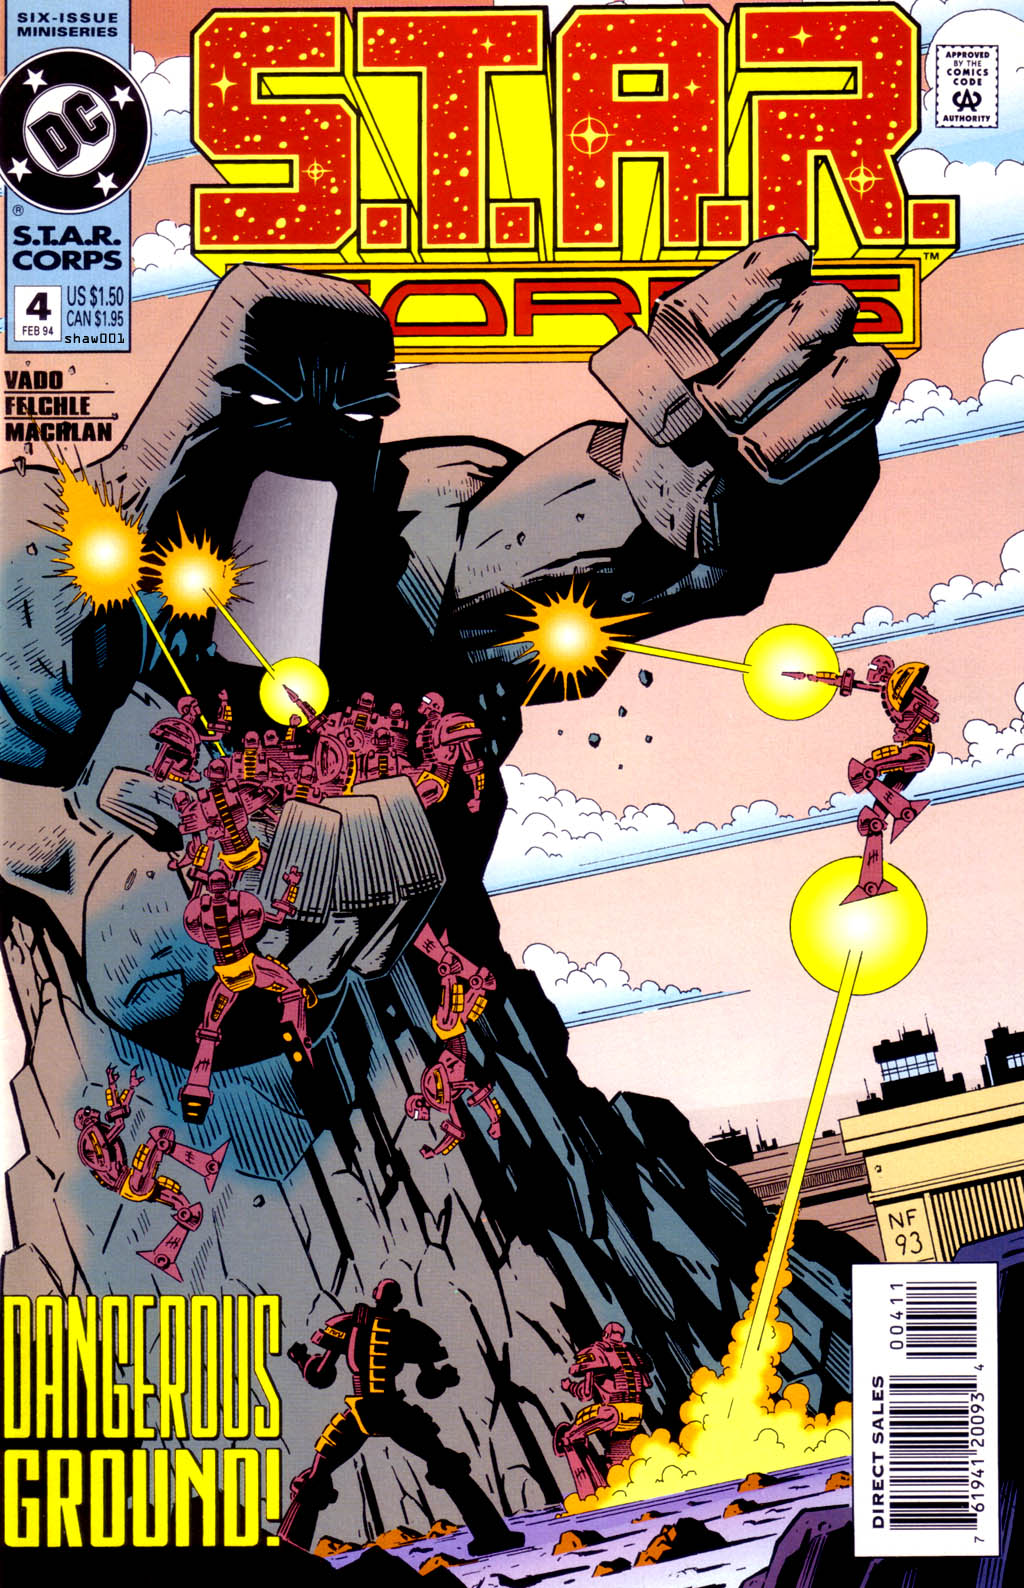 Read online S.T.A.R. Corps comic -  Issue #4 - 1